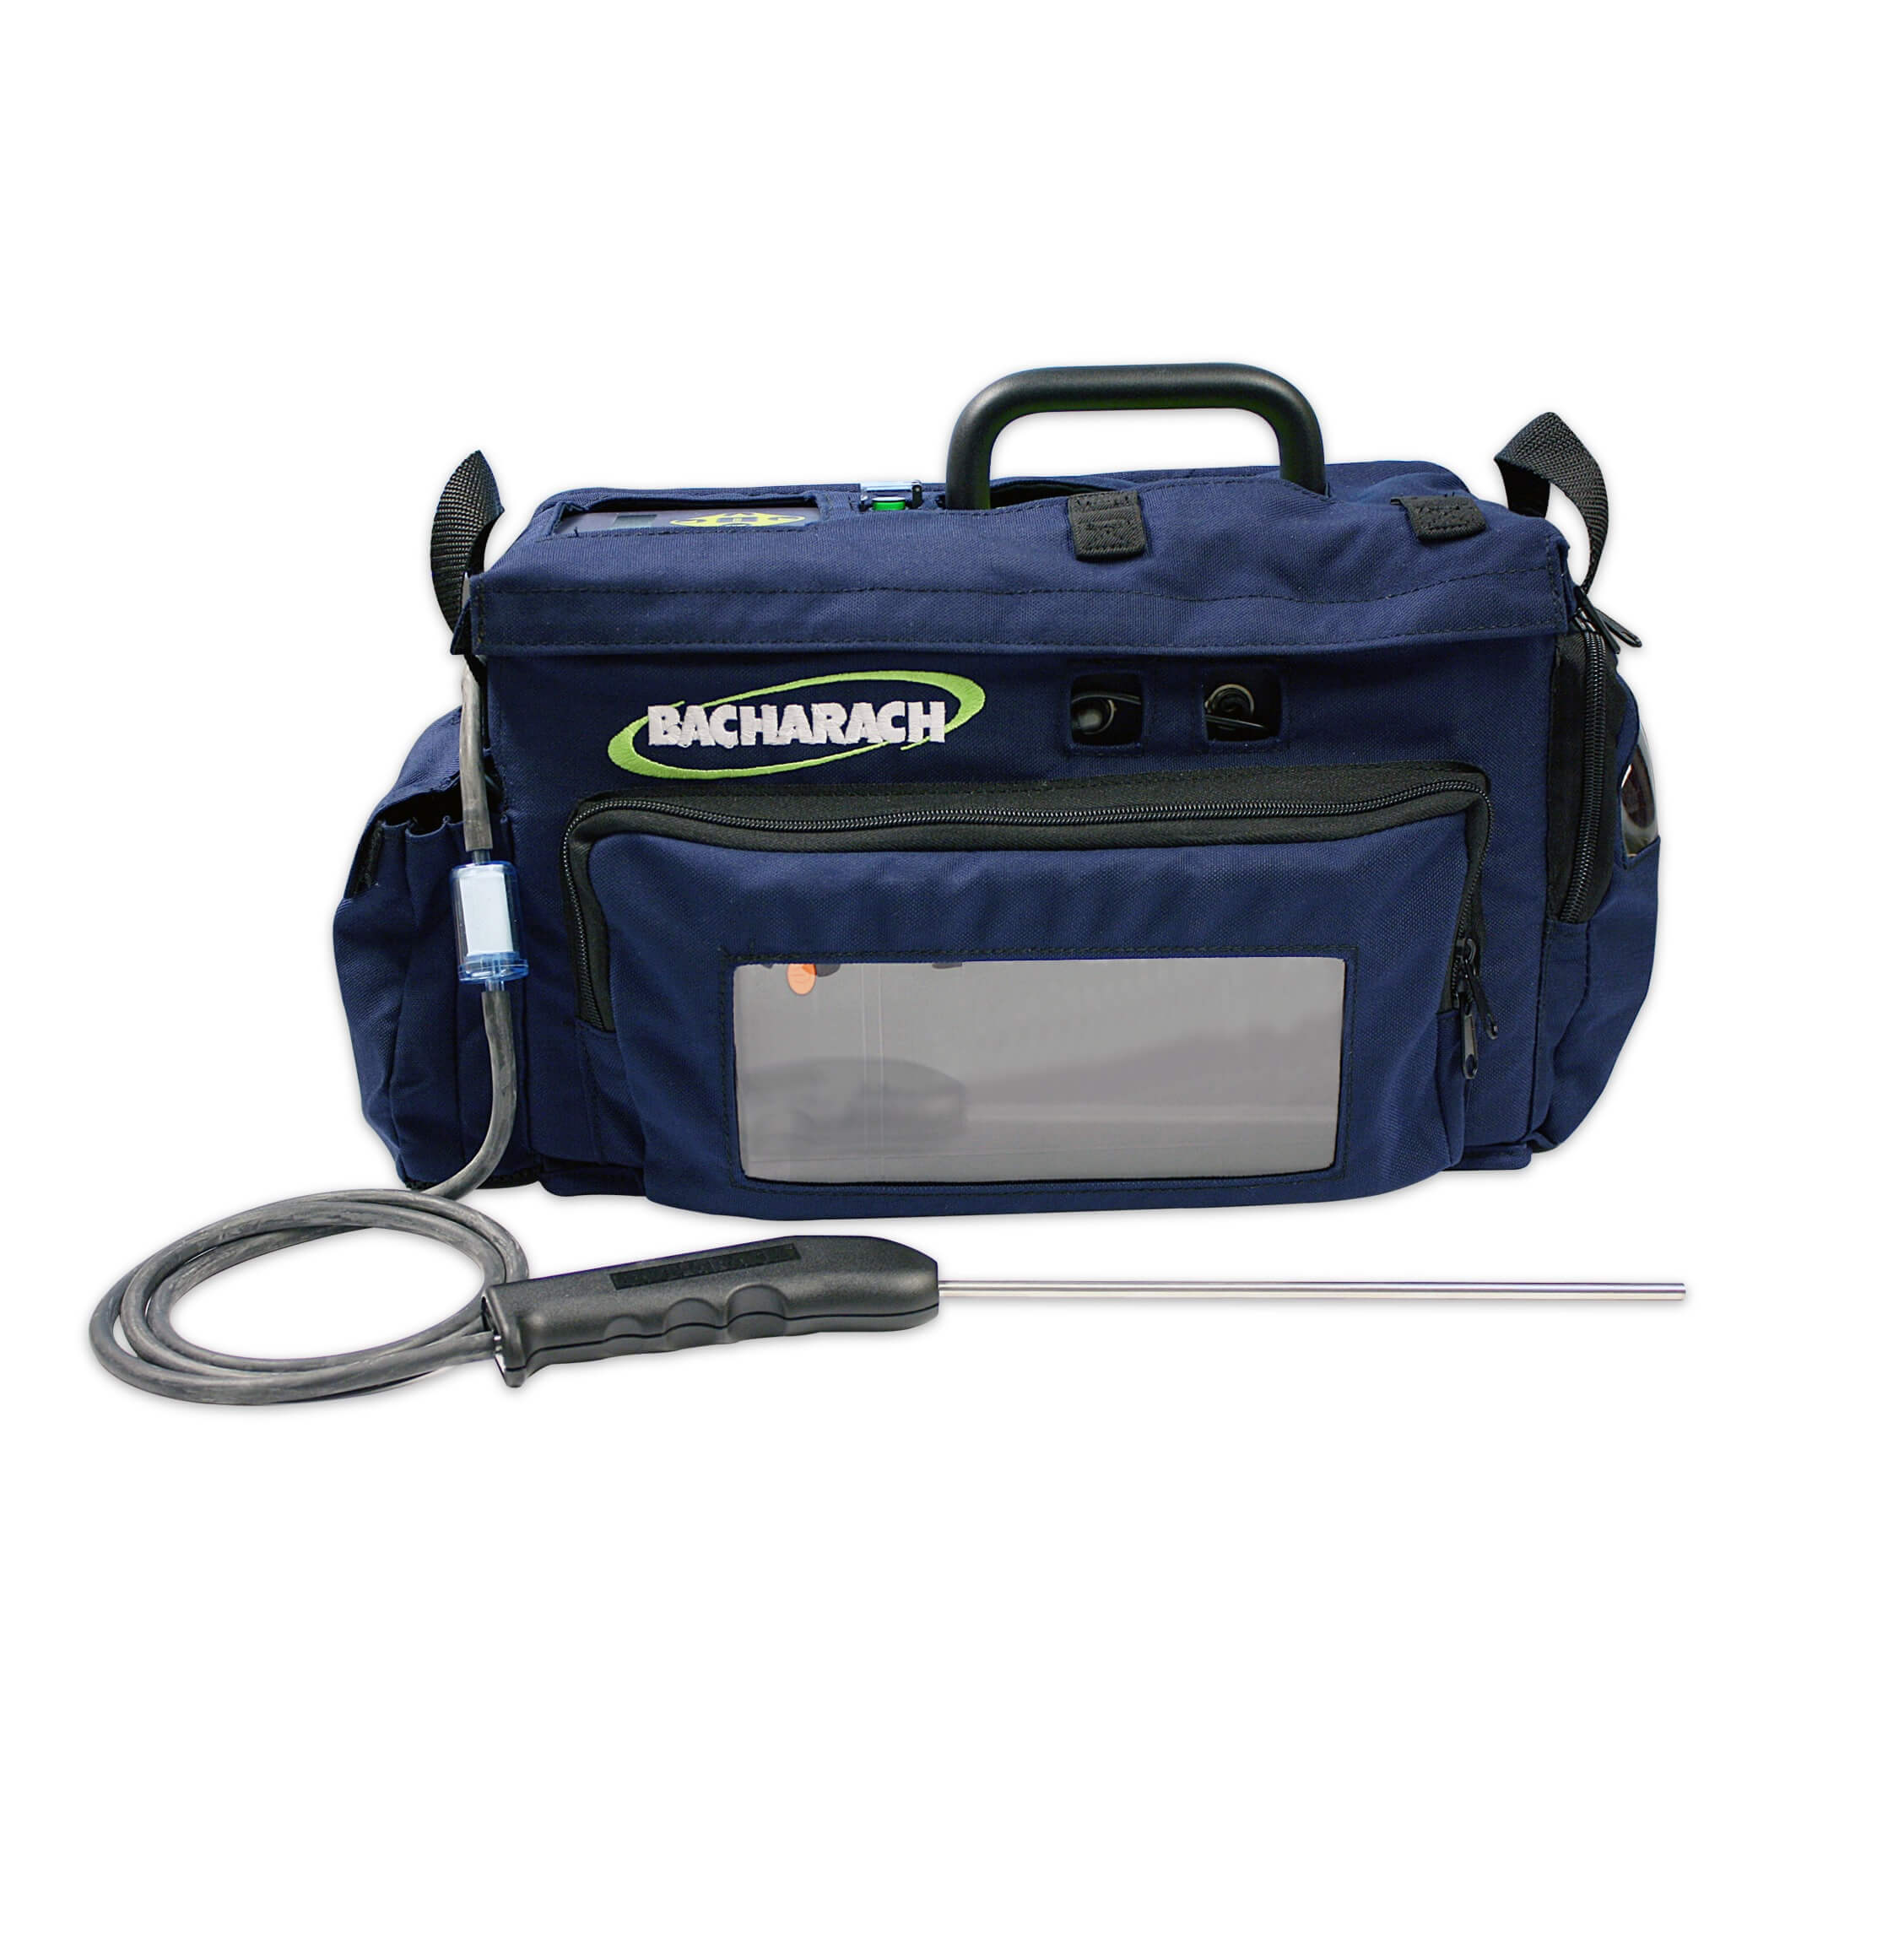 Bacharach PGM-IR 3015-5696 Portable Leak Detector for Refrigerants